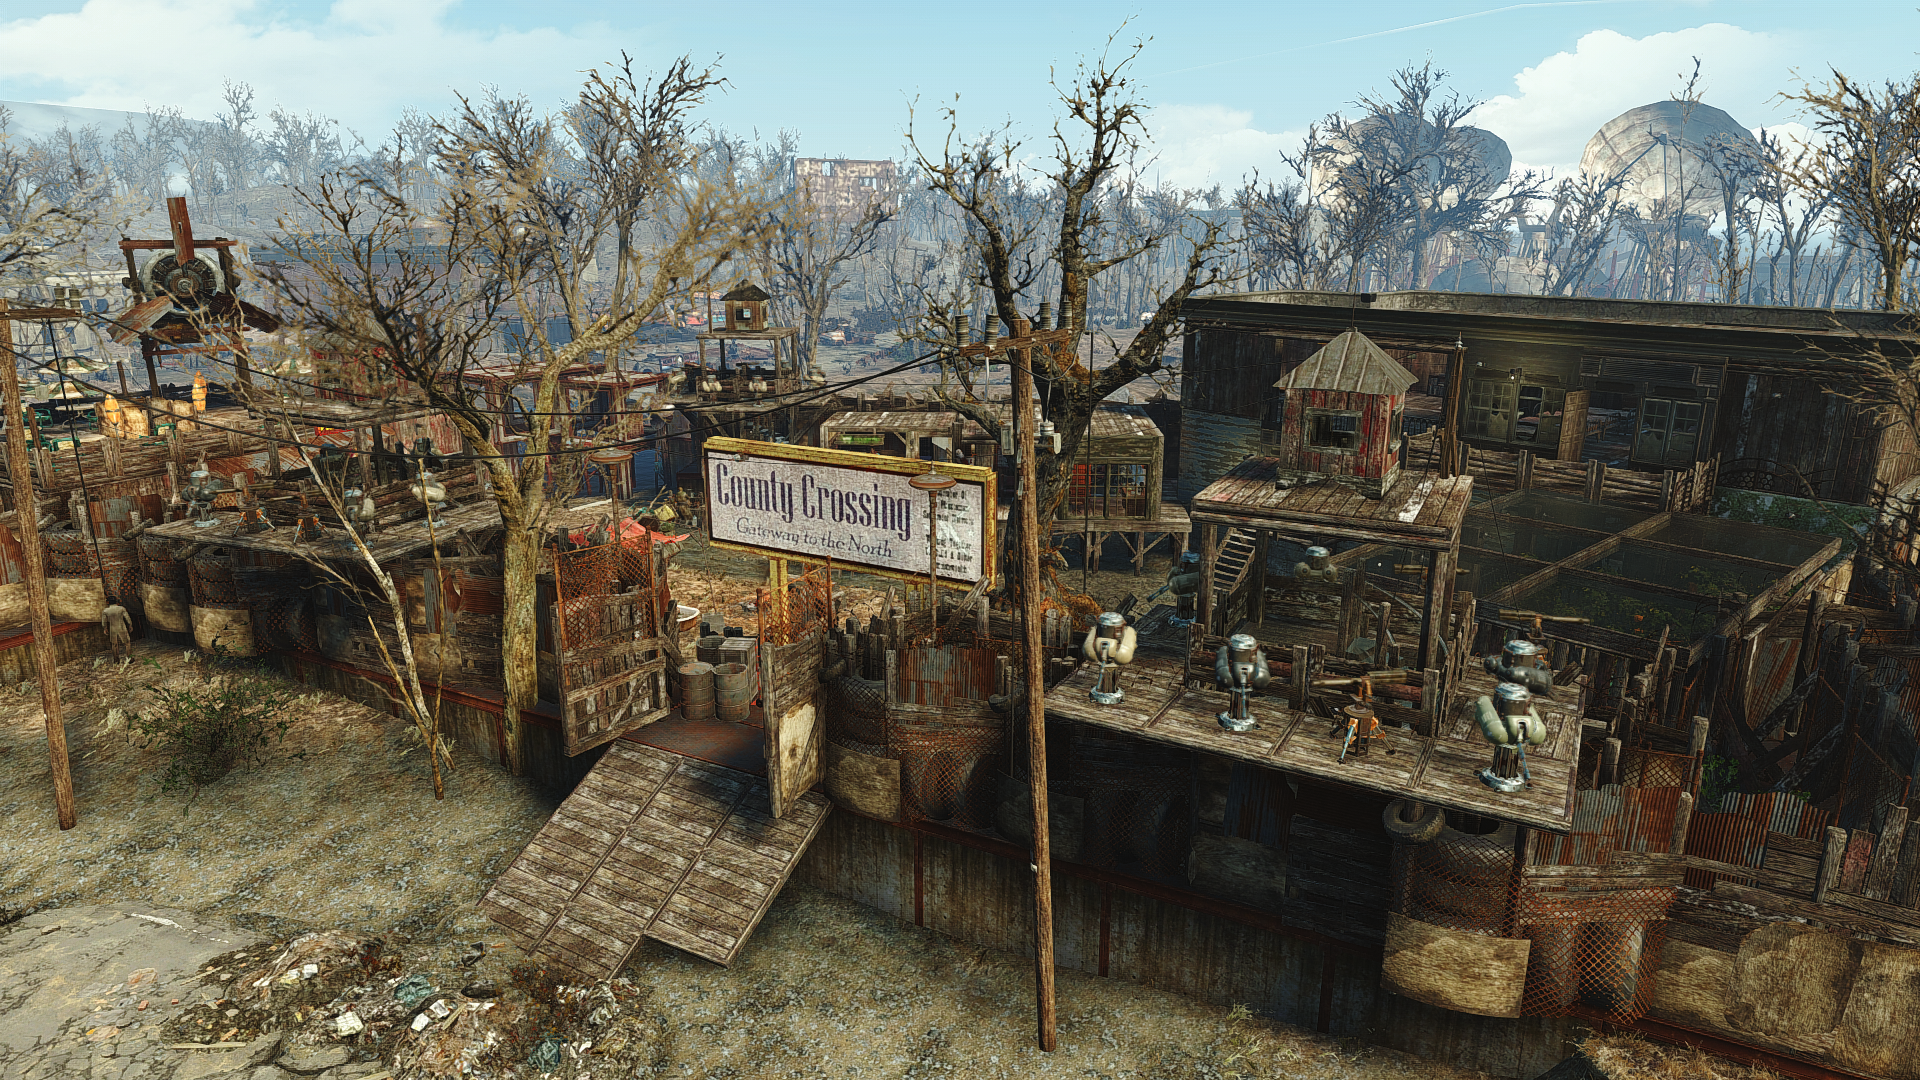 Fallout 4 Country Crossing Settlement Gaming Fallout Fallout